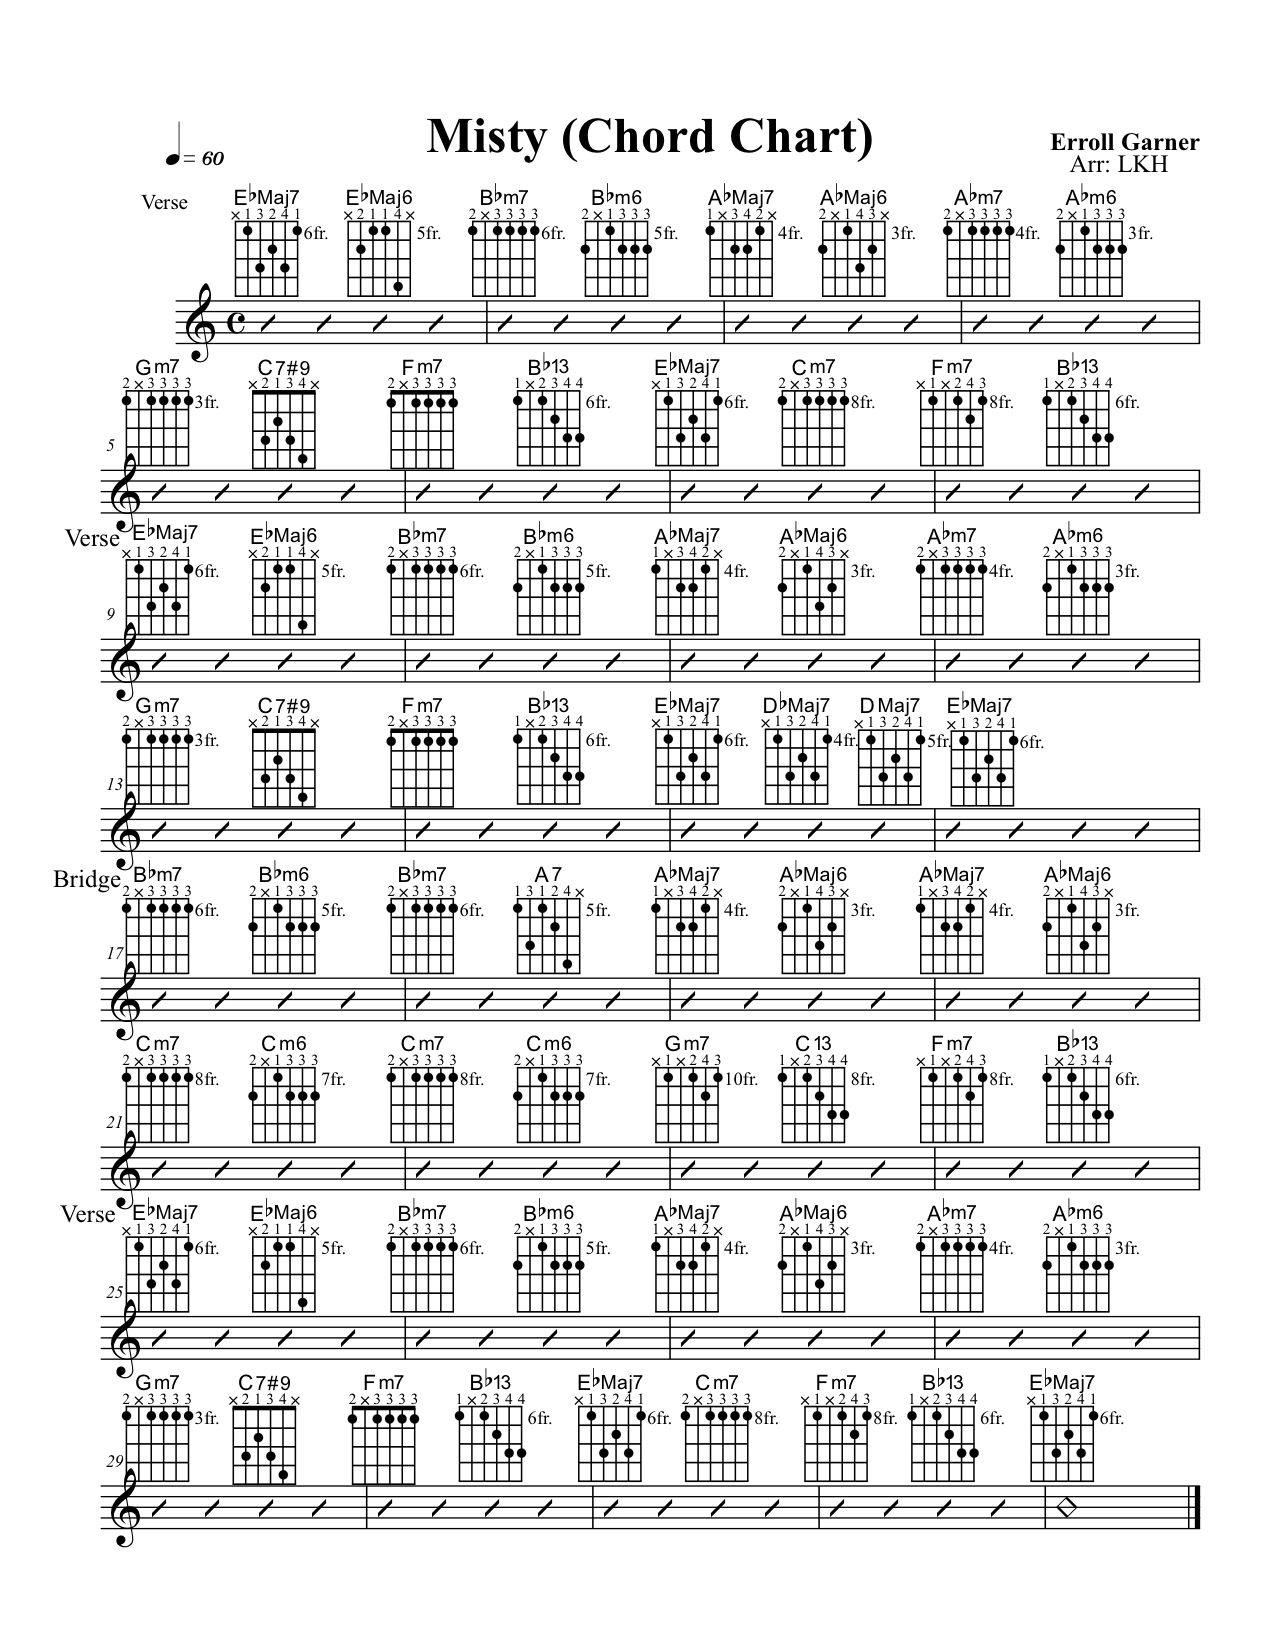 Gospel Guitar chord progressions Breakdown